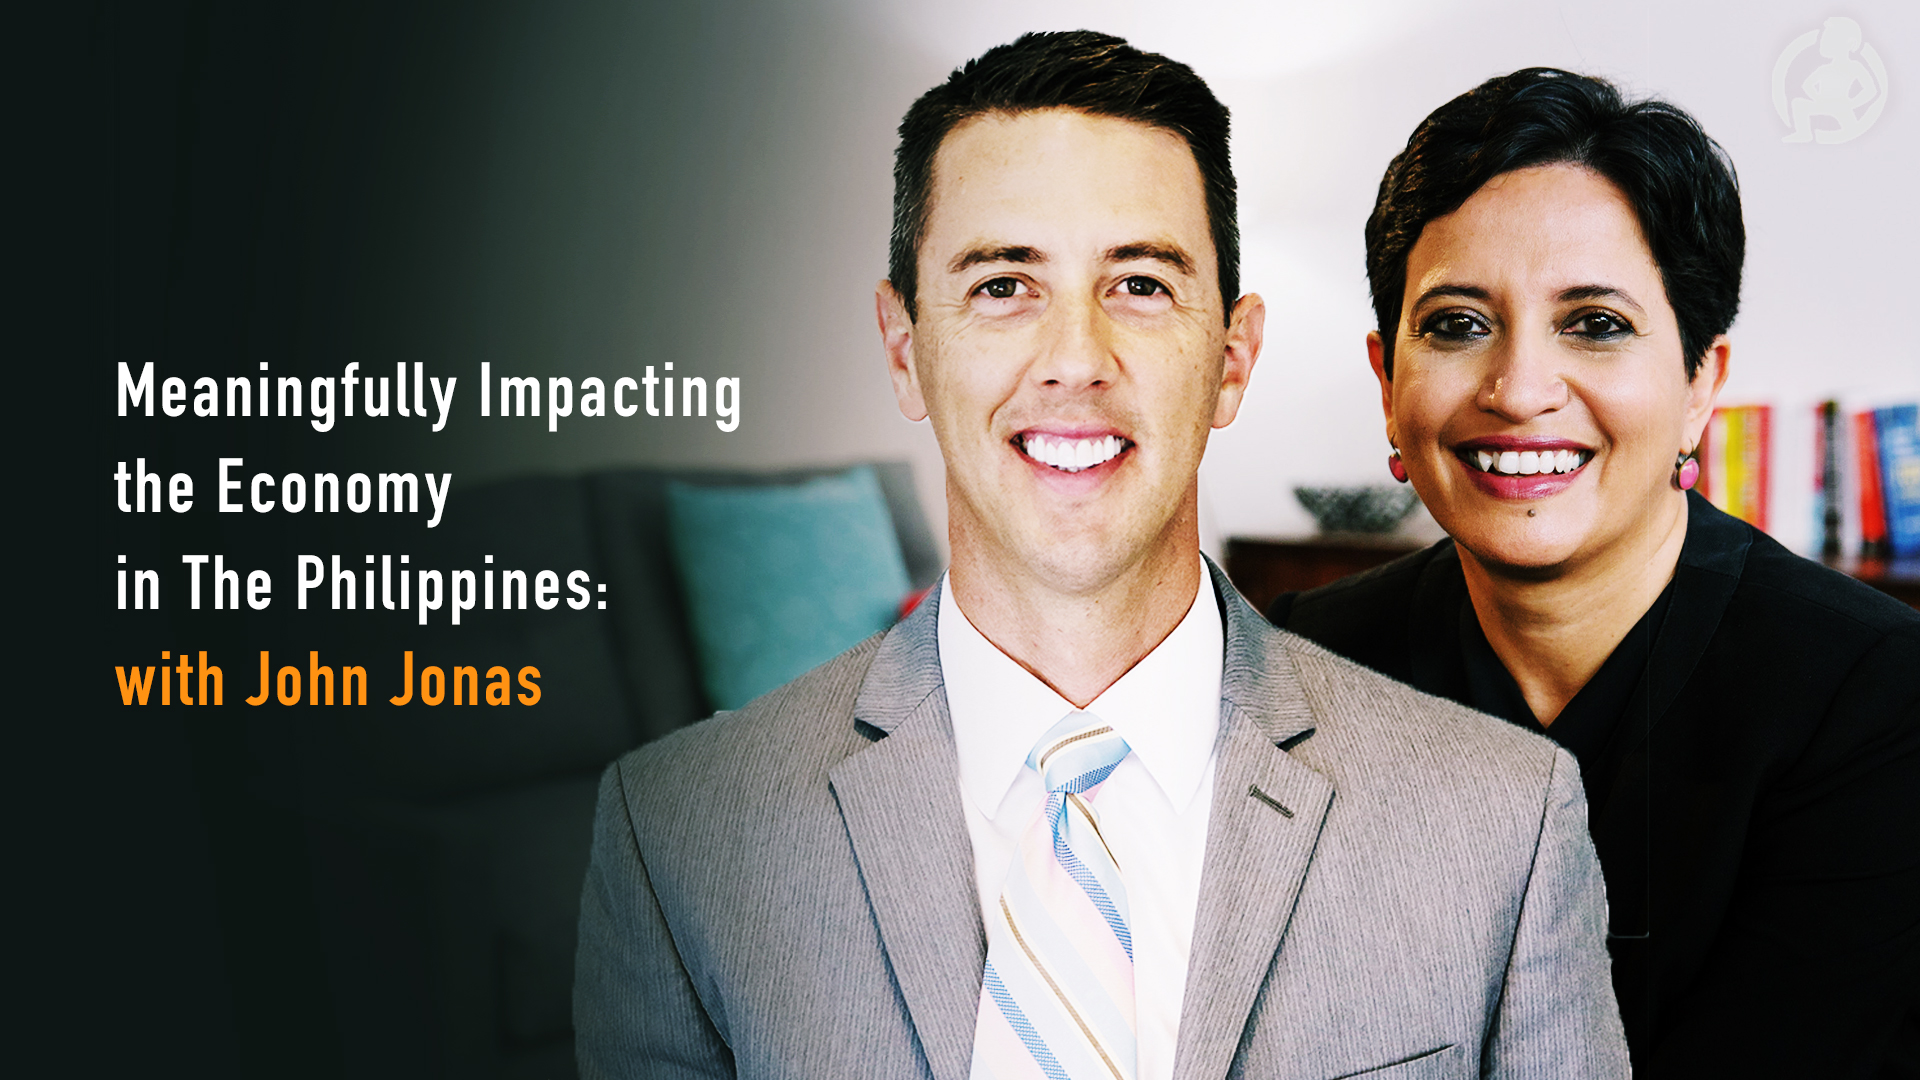 Meaningfully-Impacting-the-Economy-in-The-Philippines-Feature